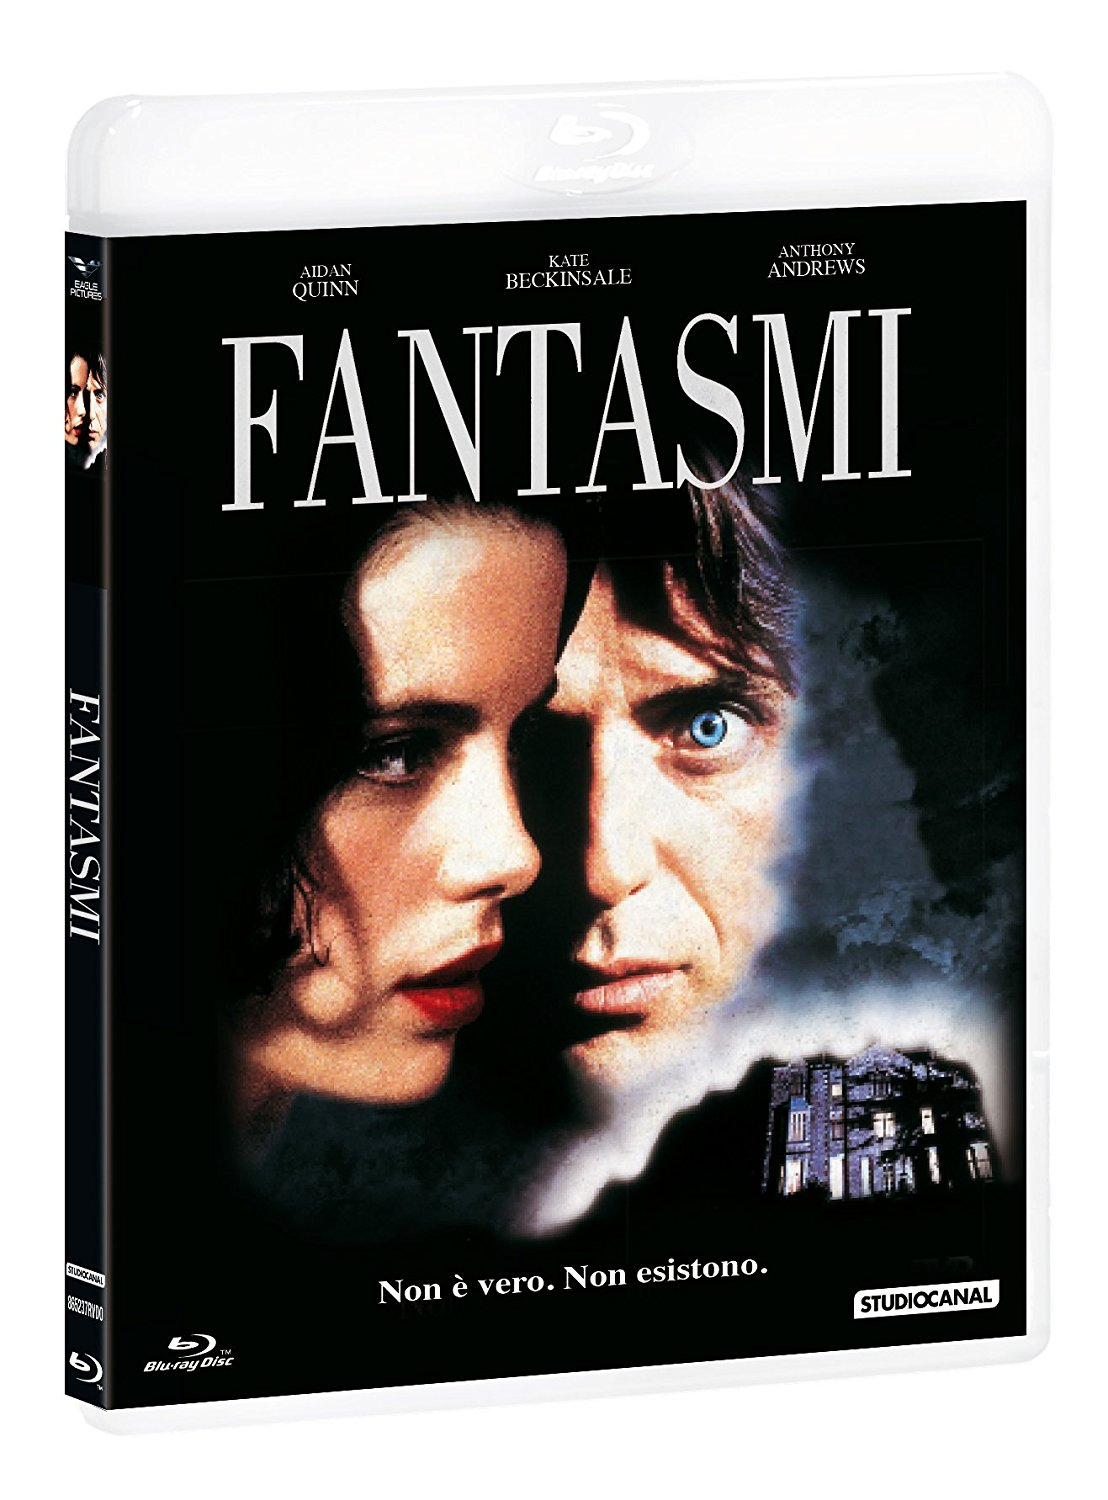 FANTASMI (EAGLE) - BLU RAY